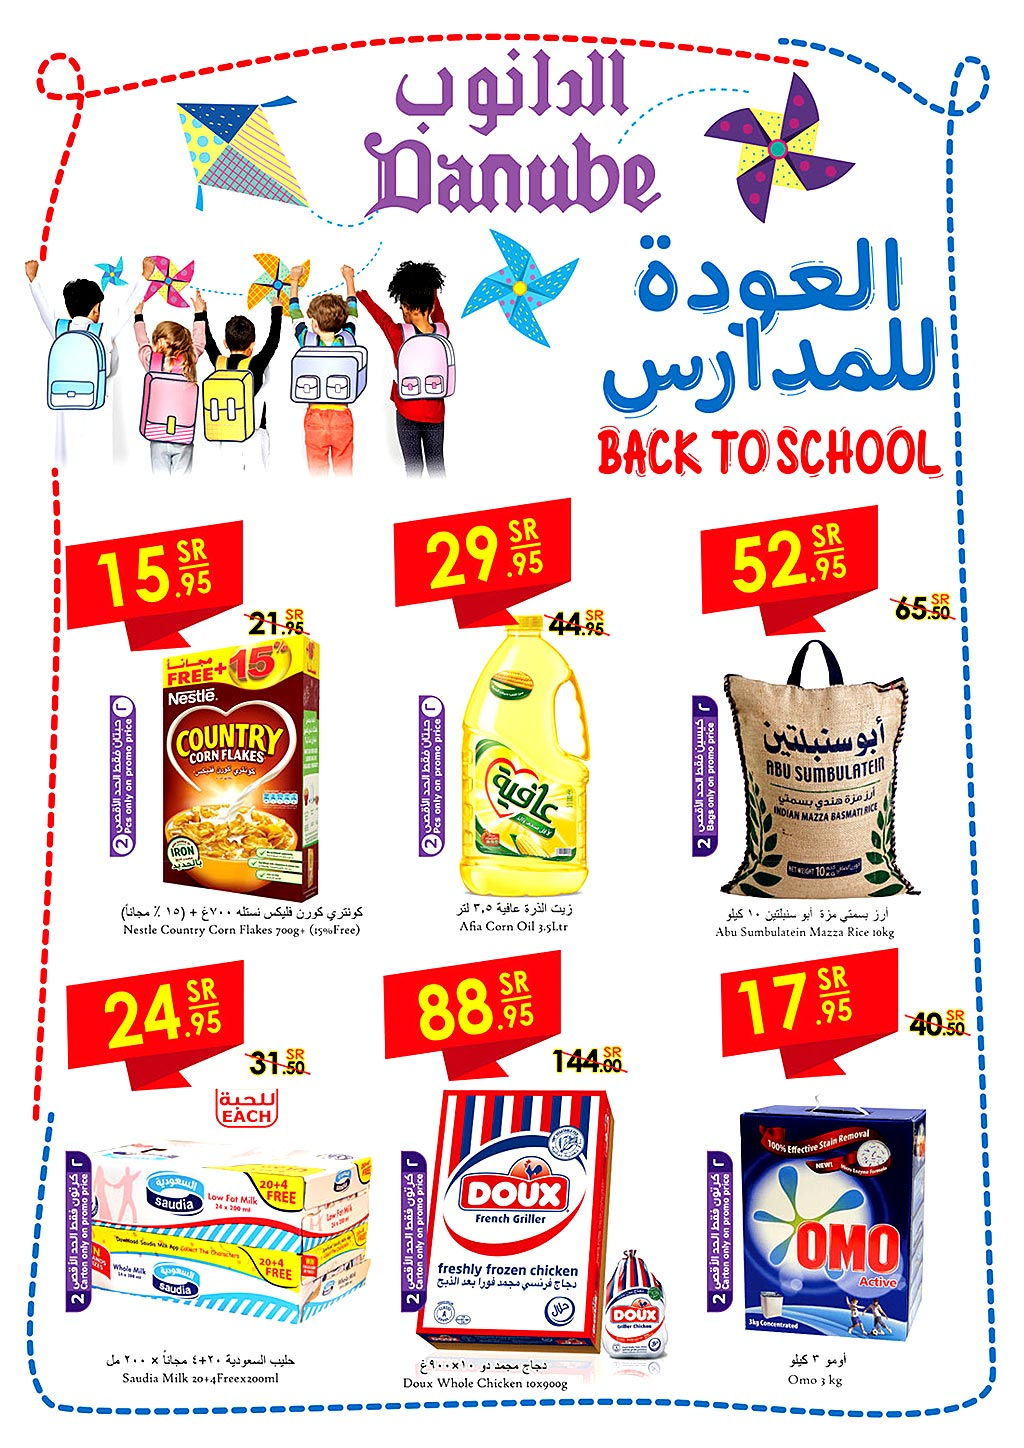 danube offers from 21aug to 29aug 2019 page number 1 عروض الدانوب من 21 أغسطس حتى 29 أغسطس 2019 صفحة رقم 1